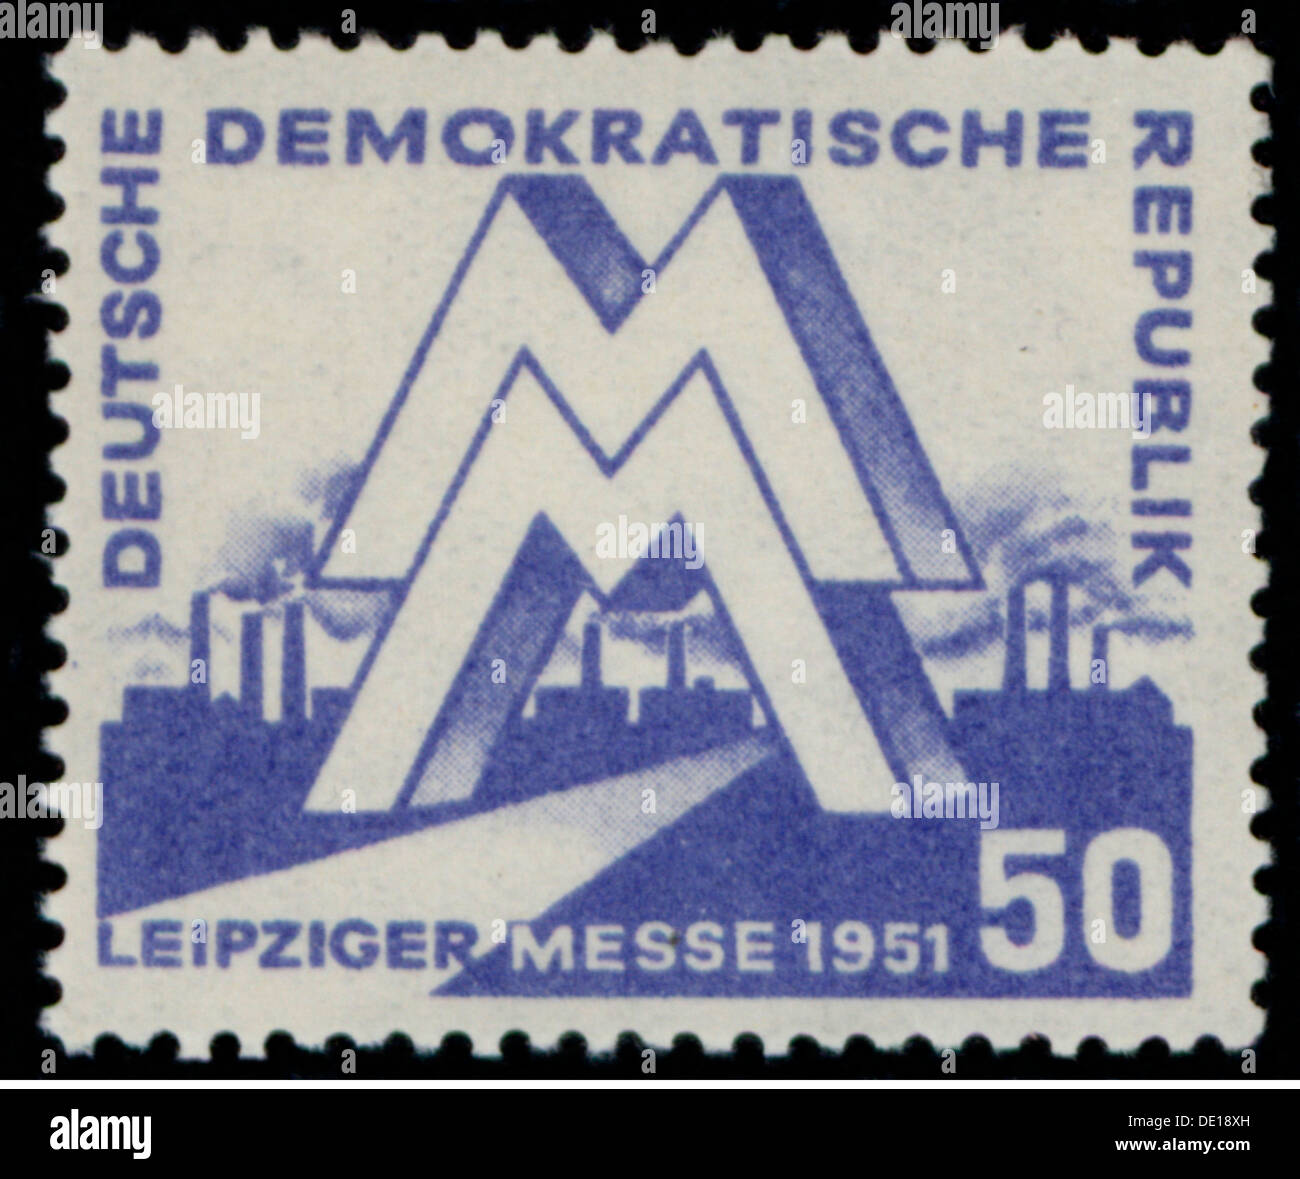 mail, postage stamps, Germany, Deutsche Post of the German Democratic Republic, 50 pfennig postage stamp, design by Egon Pruggmayer, date of issue 4.3.1951, valid until 31.3.1952, motif: Leipzig spring trade fair 1951, East-Germany, East Germany, GDR, DDR, Leipzig fair, Leipzig, symbol, symbols, emblem, emblems, logo, logos, fair sign, MM, industry, industries, trade, economy, postal stamp, postal stamps, 1950s, 50s, 20th century, mail, post, republic, republics, pfennig, penny, postage stamp, postage stamps, design, designs, historic, historical, Additional-Rights-Clearences-NA - Stock Image